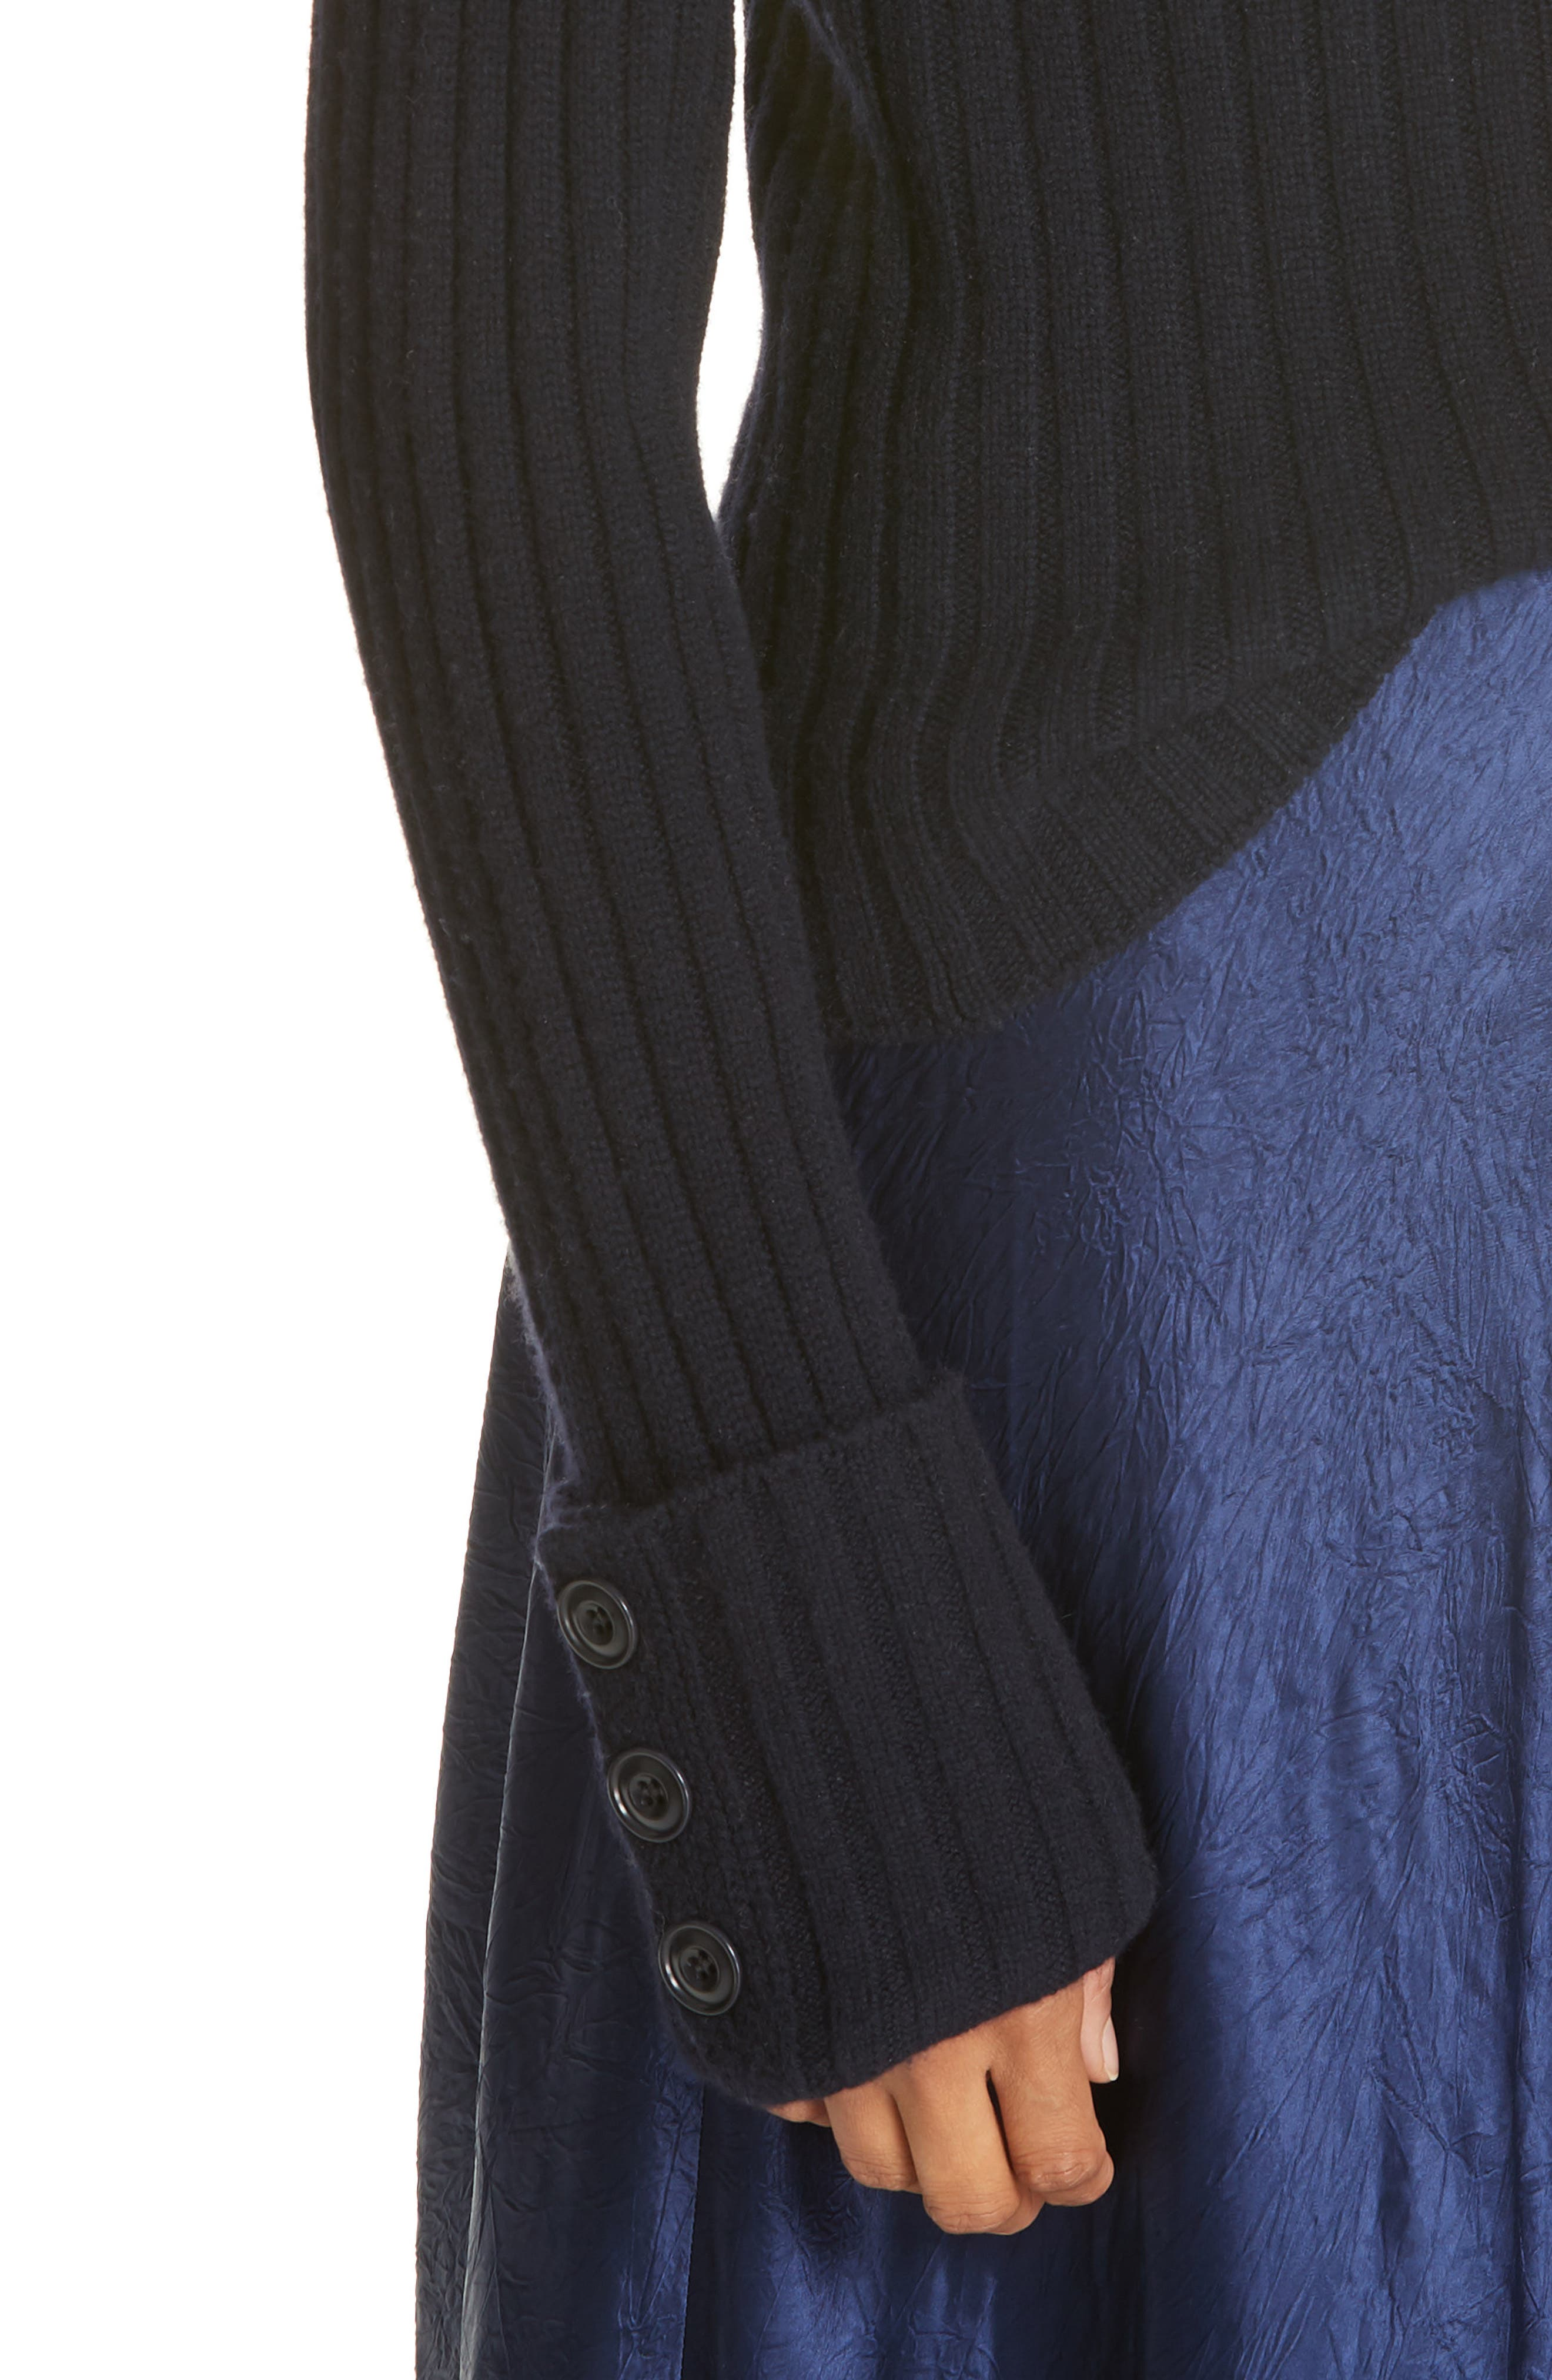 Button Cuff Wool & Cashmere Sweater,                             Alternate thumbnail 4, color,                             403